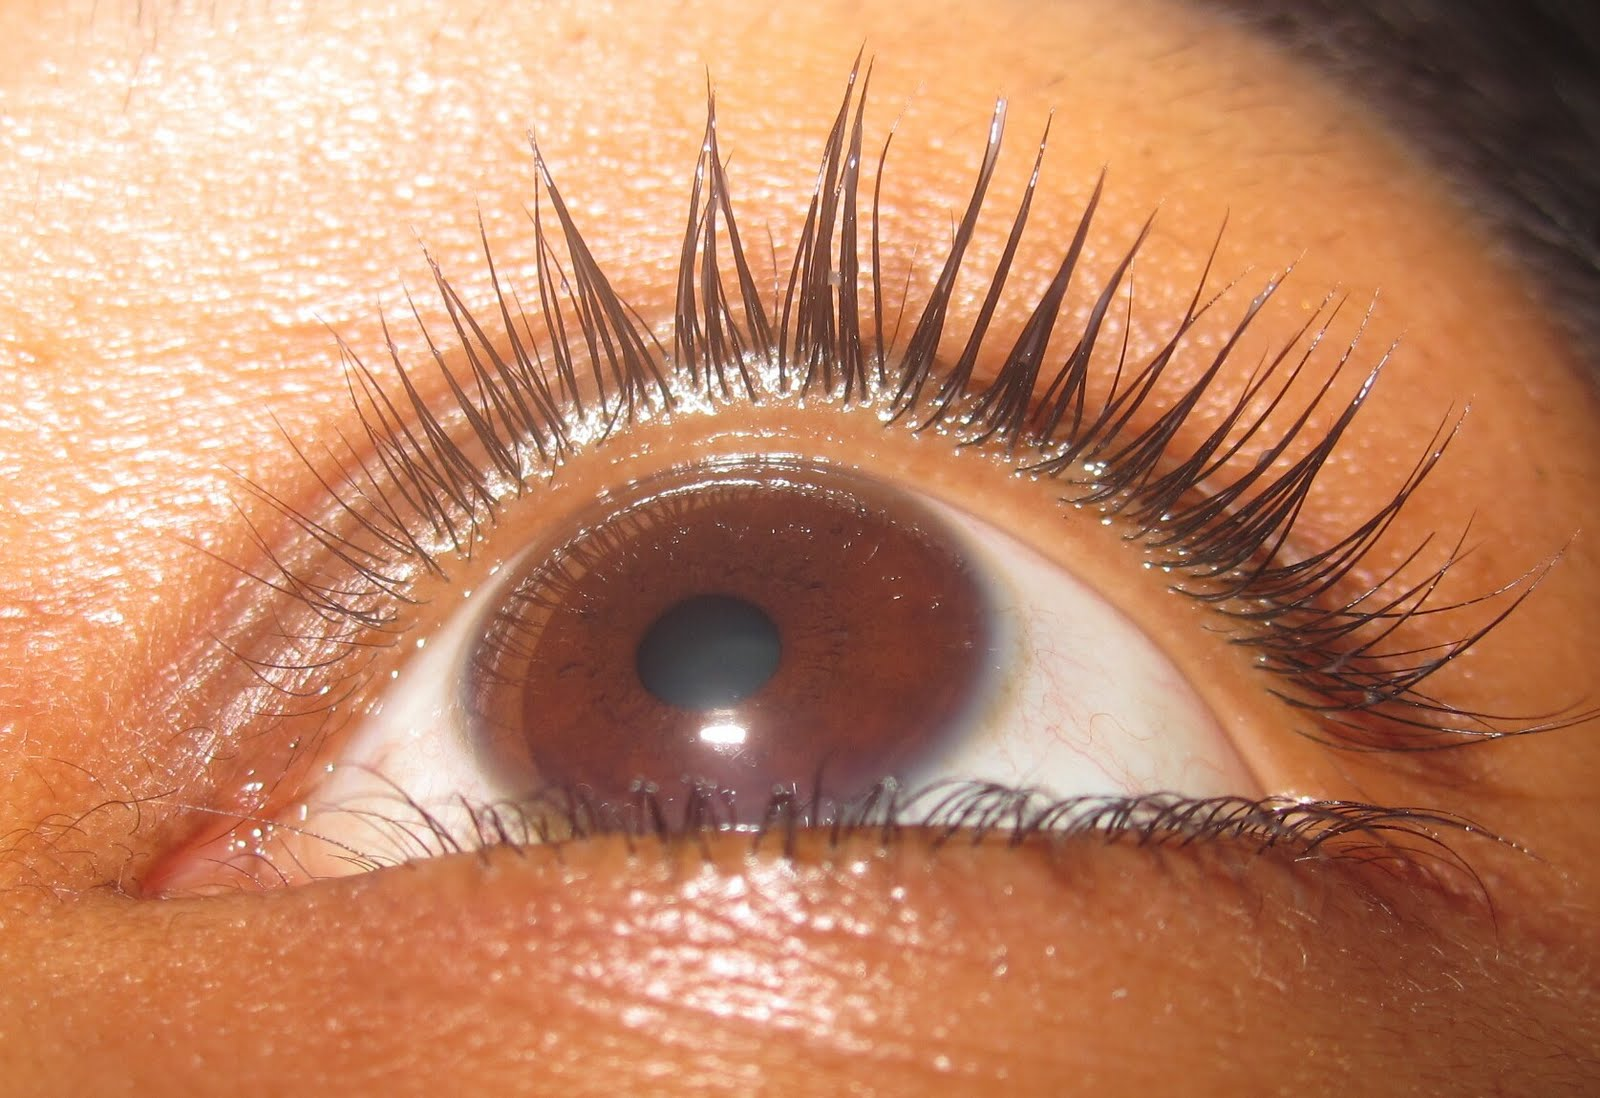 e77bfb4a133 So in two weeks iv noticed less fall out, lashes do feel thicker and  stronger, and they look fuller because im noticing new growth.